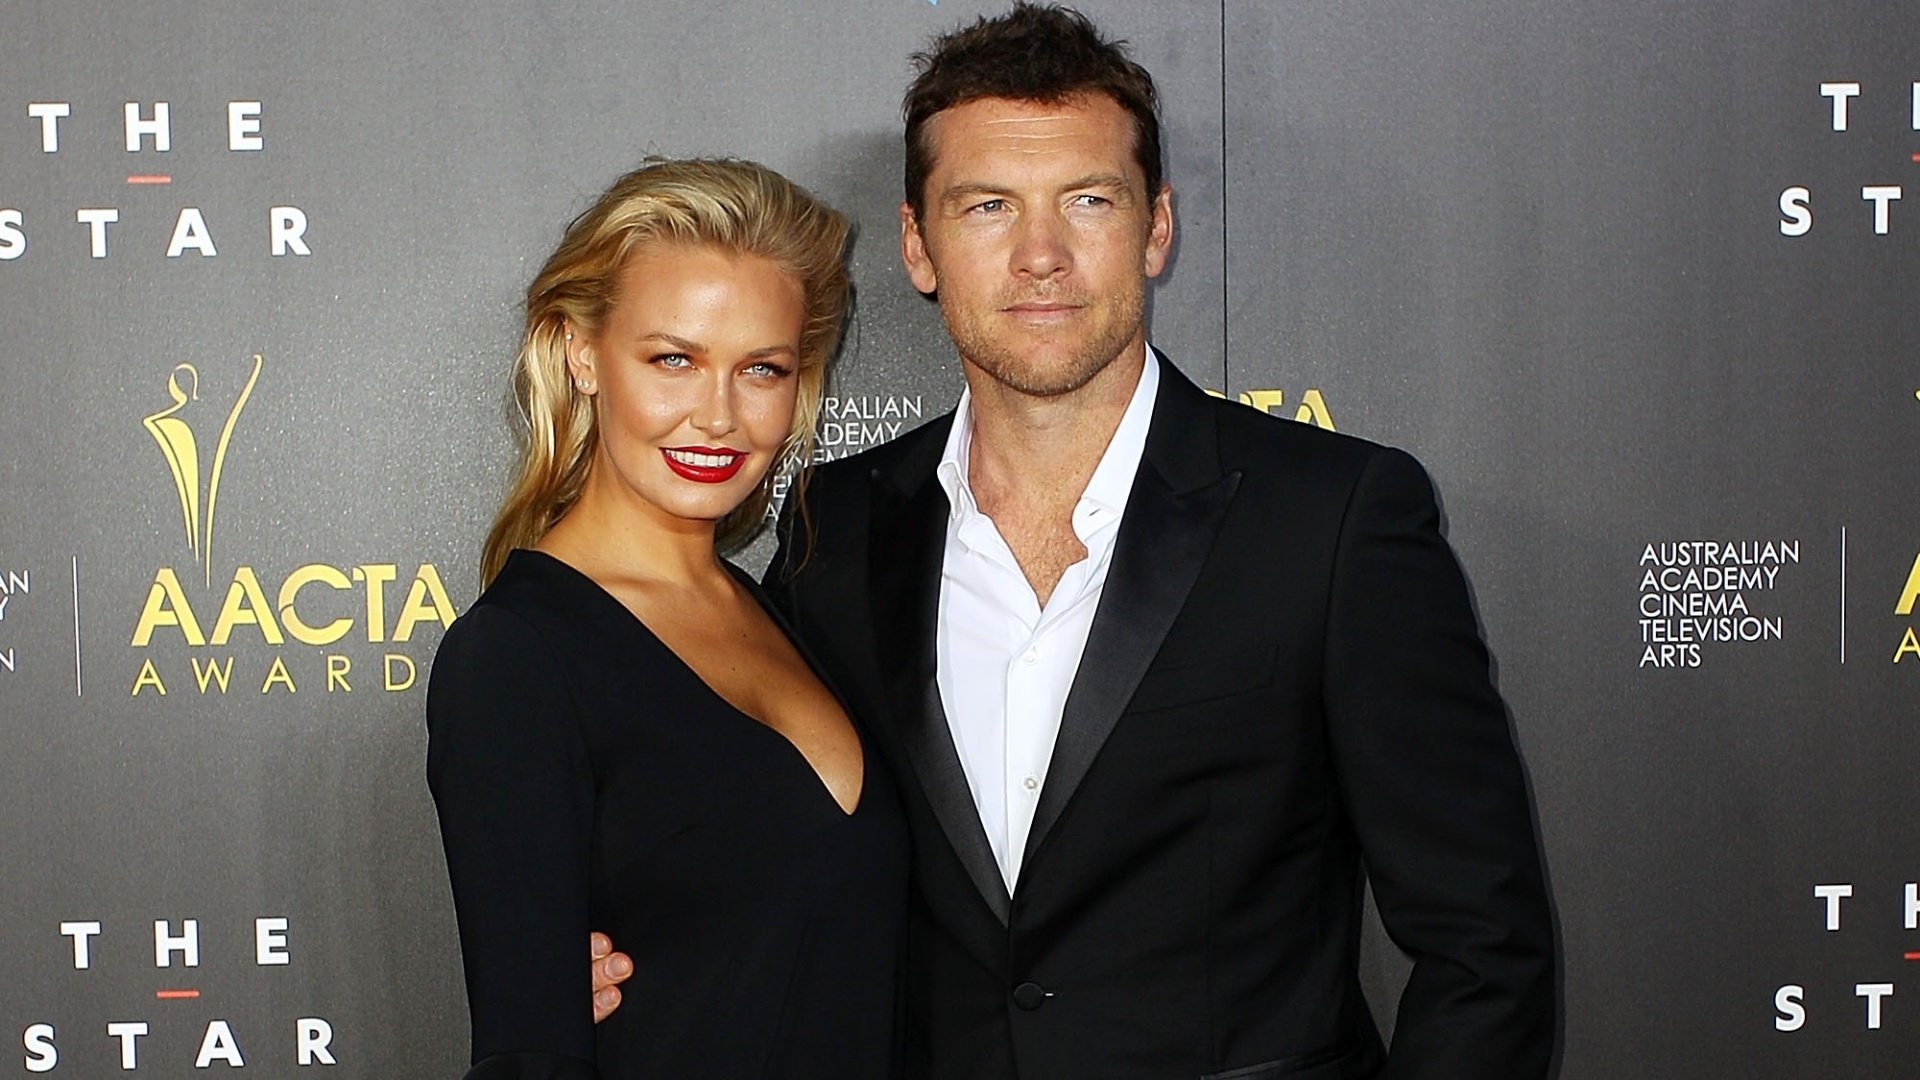 30.jan.2014 - Lara Bingle e Sam Worthington no 3º AACTA Awards em Sidney, Austrália